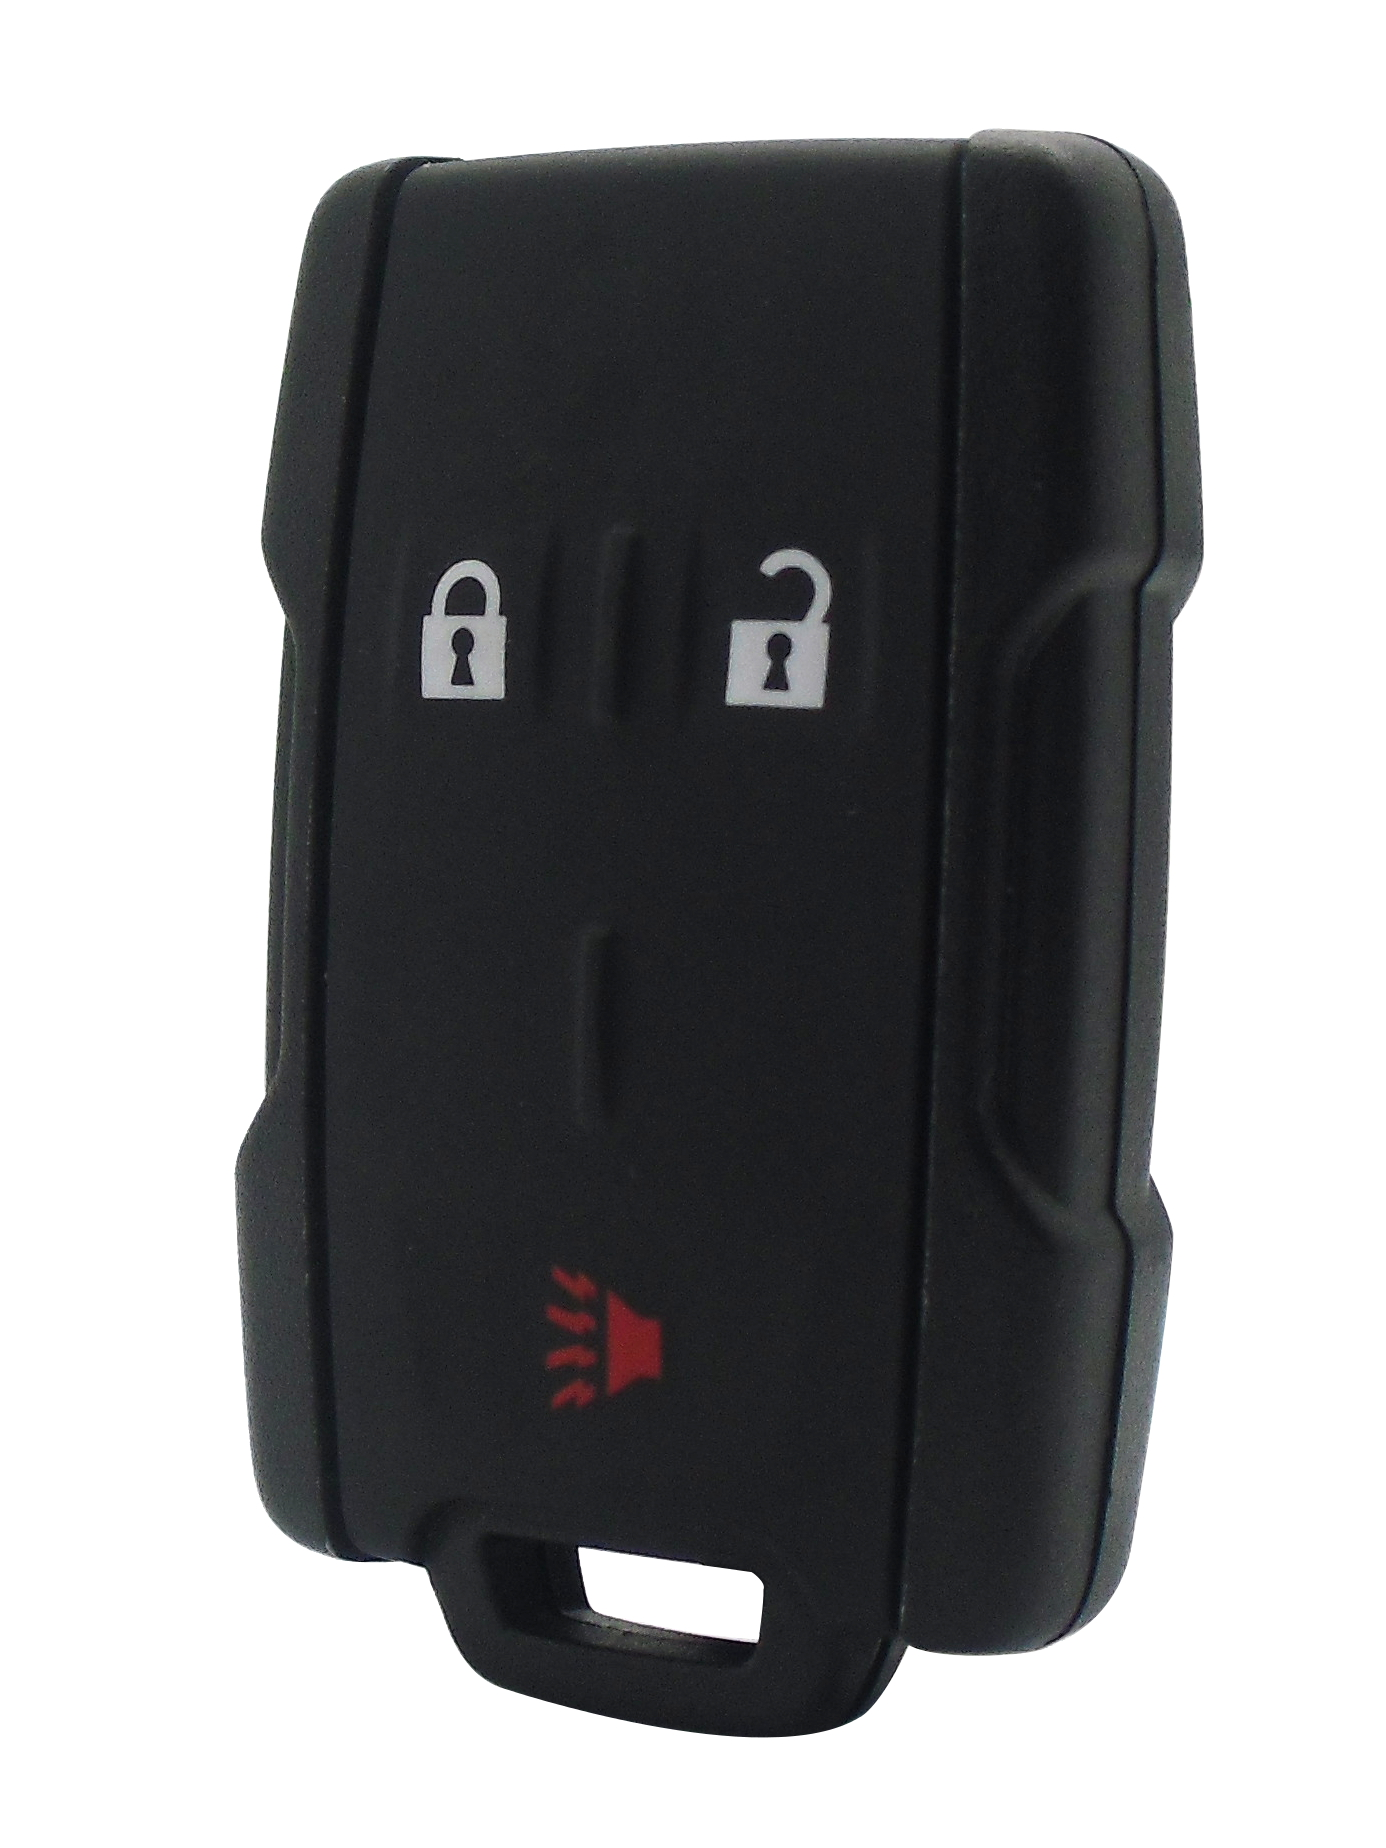 Chevrolet / GM Keyless Entry Remote - 3-Button